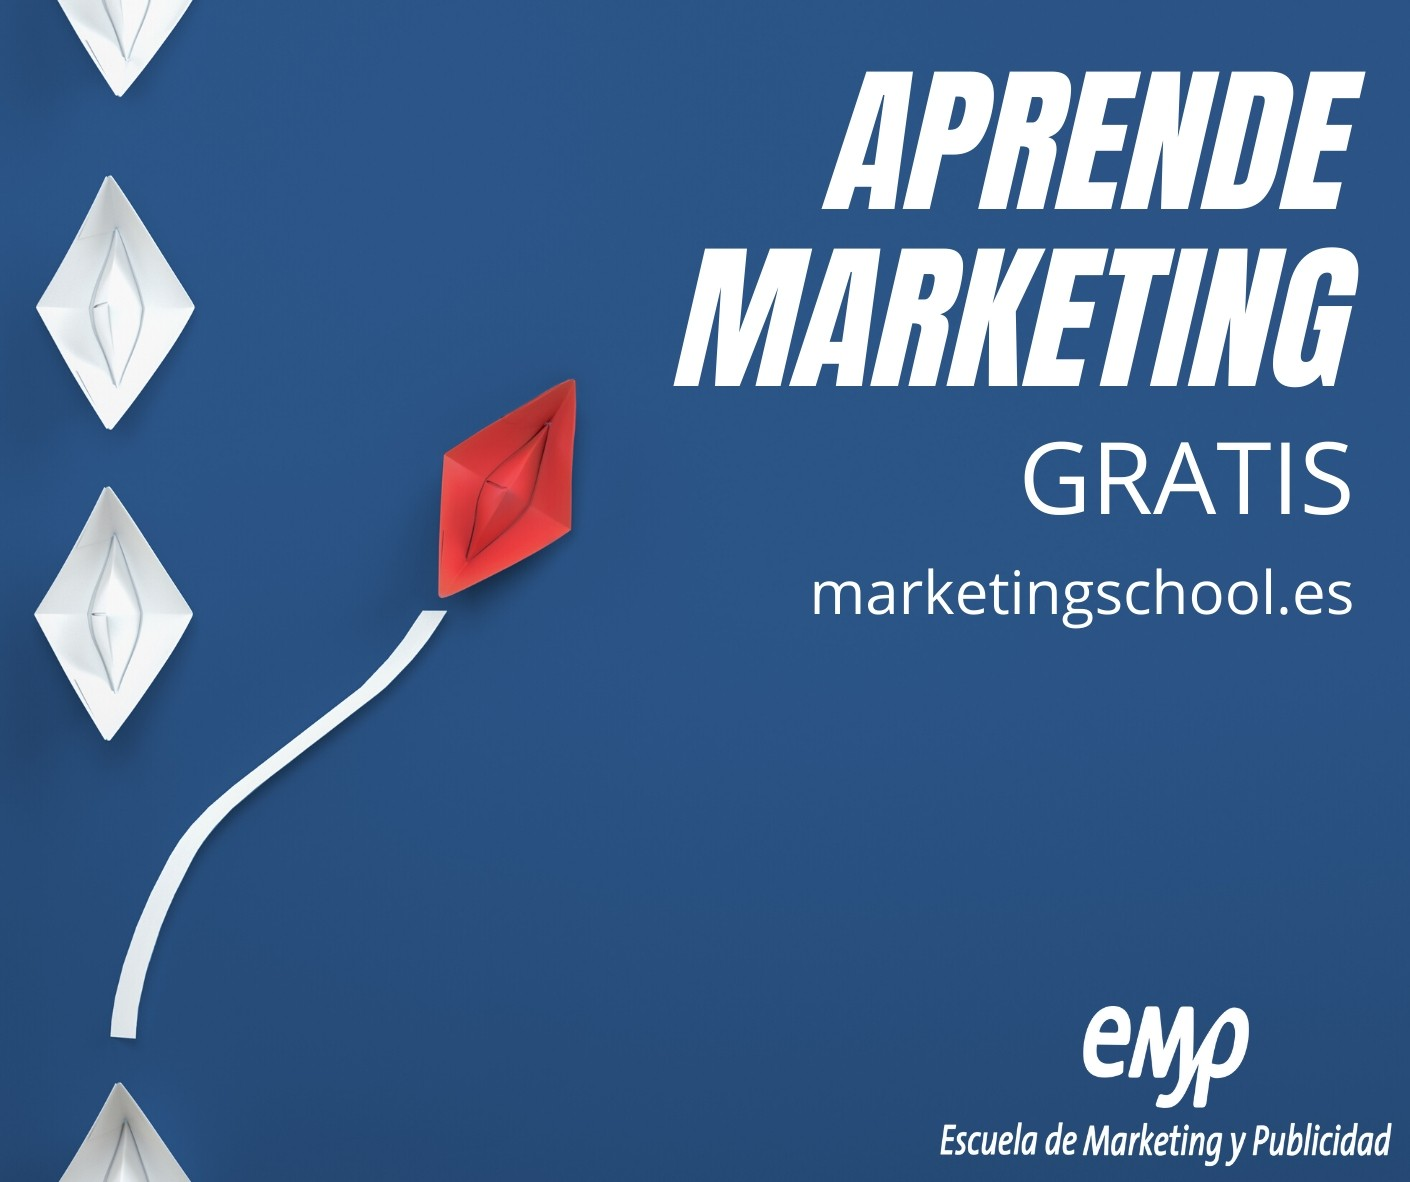 Kinewa enseña marketing gratuitamente